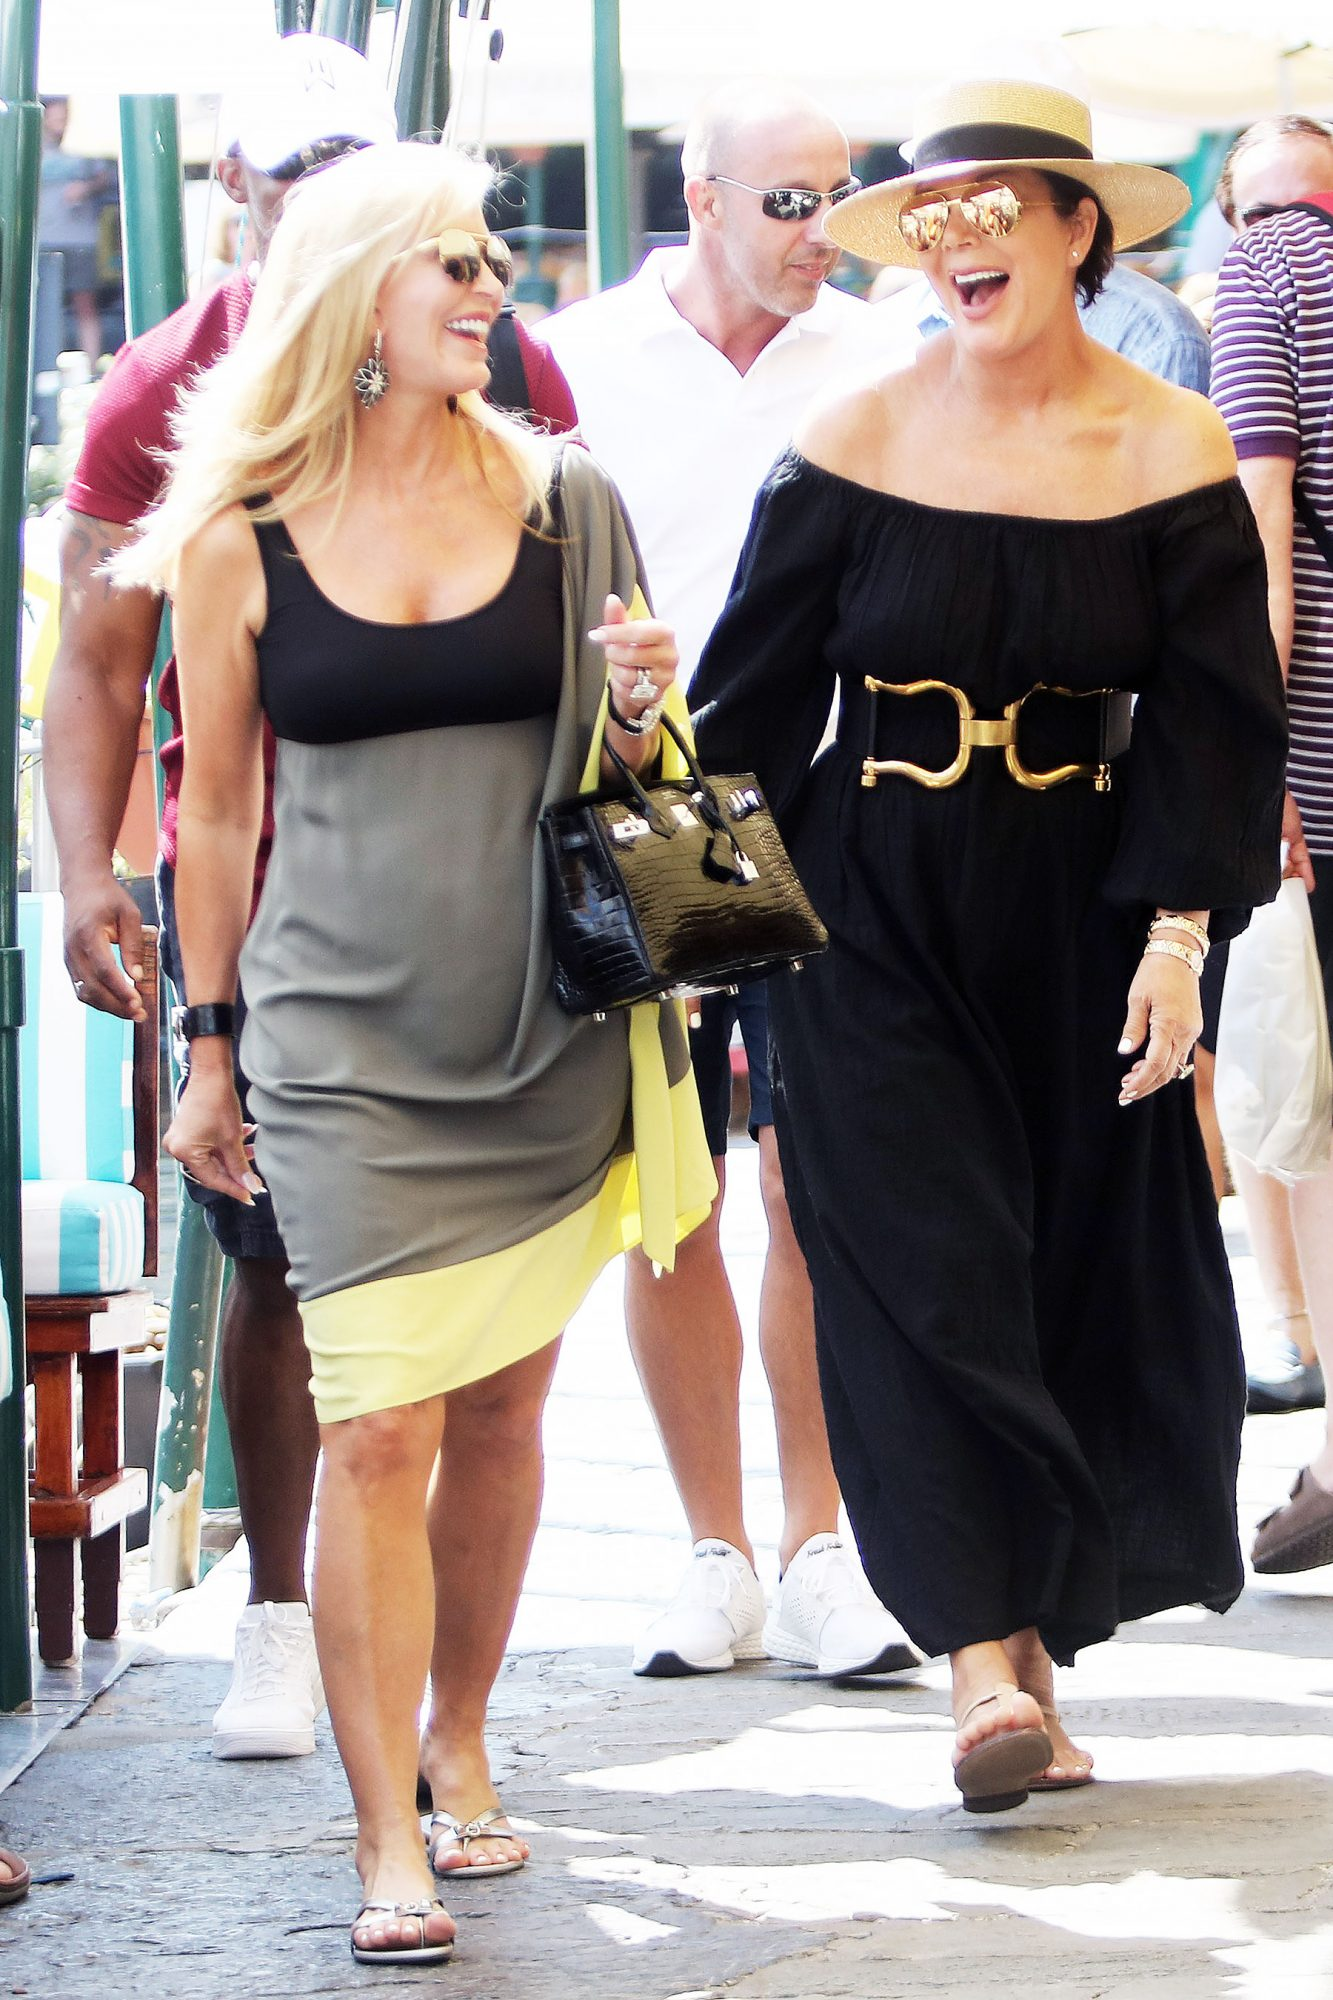 Kris Jenner and Corey Gamble are Spotted on Vacation in Portofino, Italy.